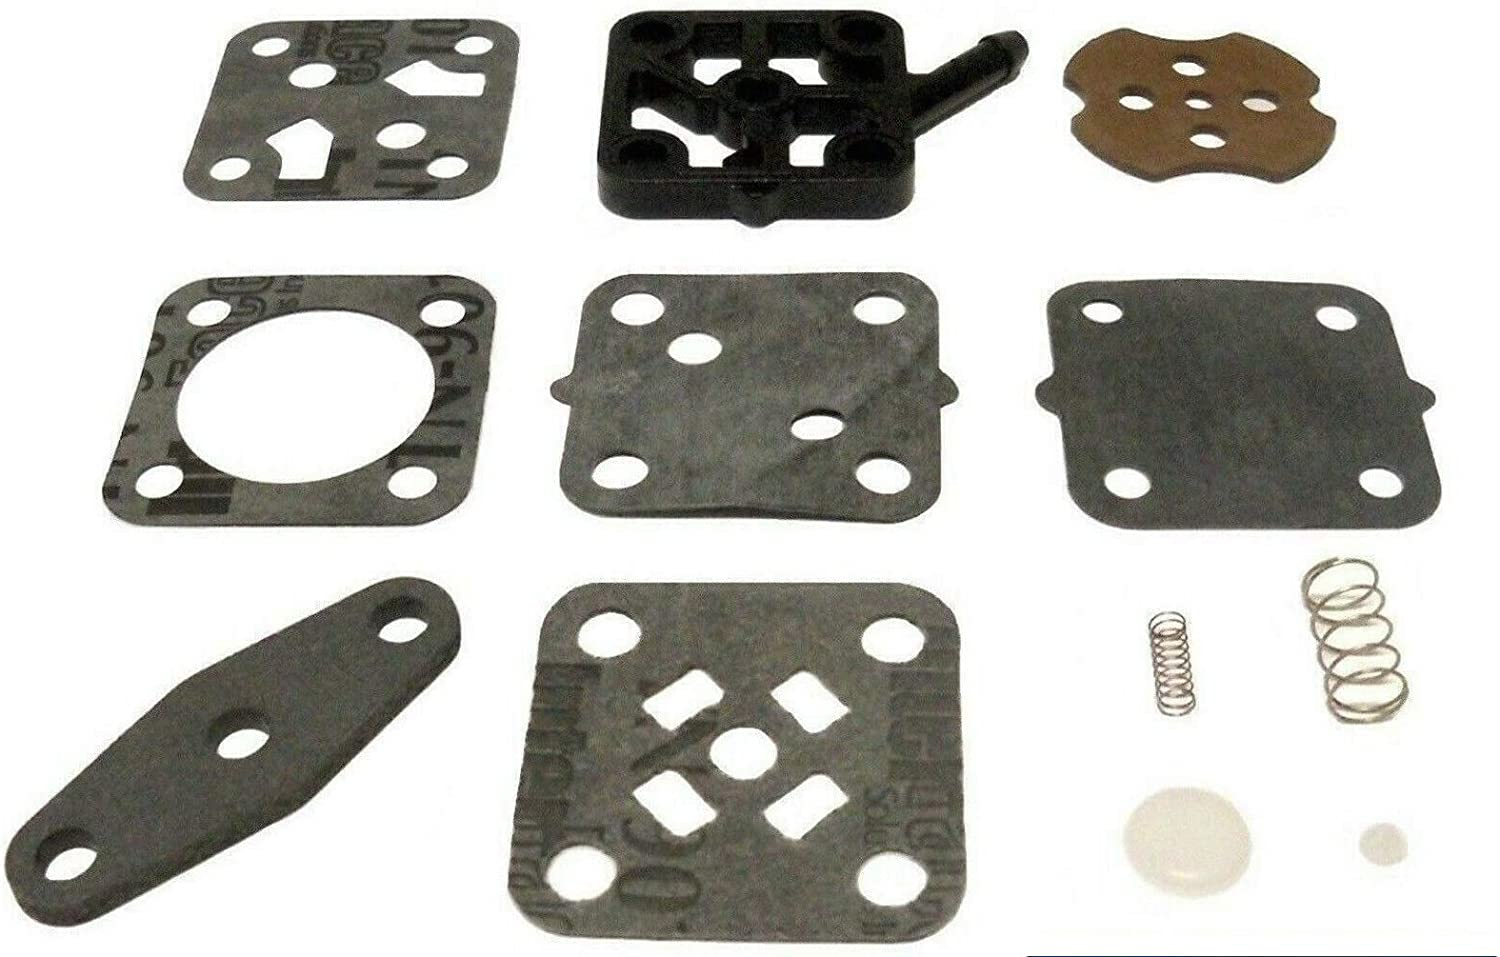 emp Johnson Evinrude 2.5 4 4.5 5 6 6.5 7.5 8 9.9 15 Hp 1982-1992 Fuel Pump Kit Made in USA Replaces 18-7823 393088